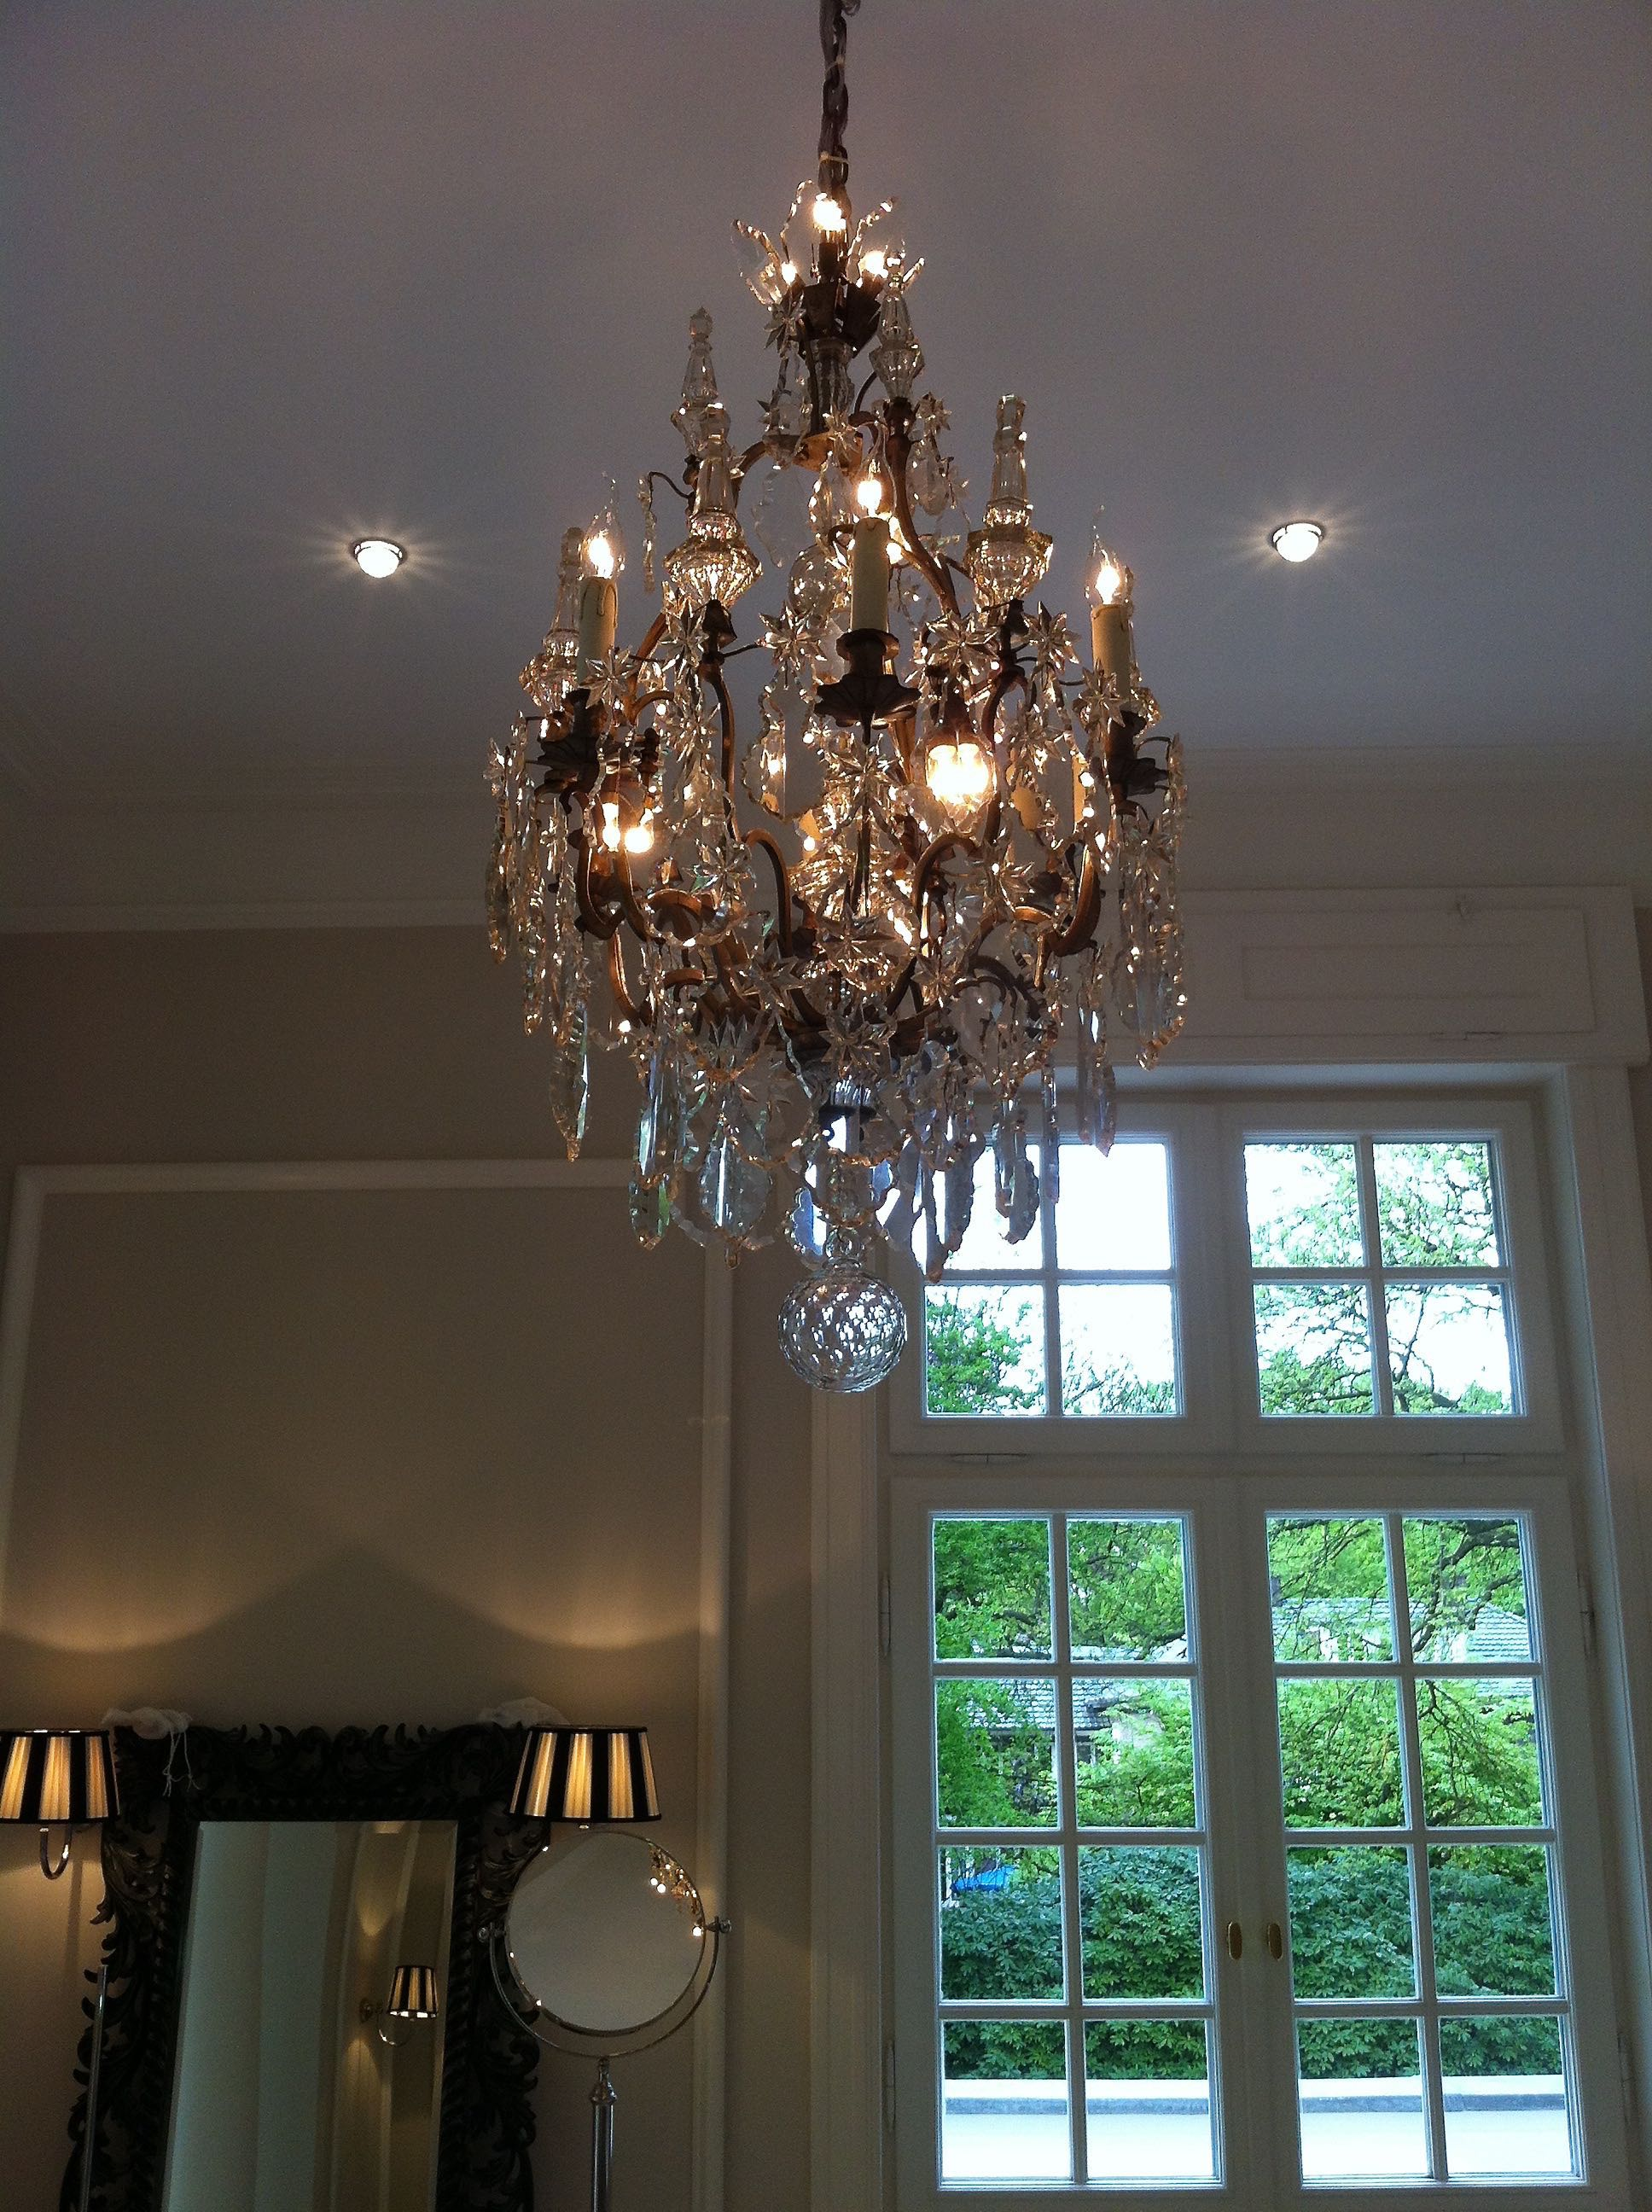 French silvered chandelier in the bathroom